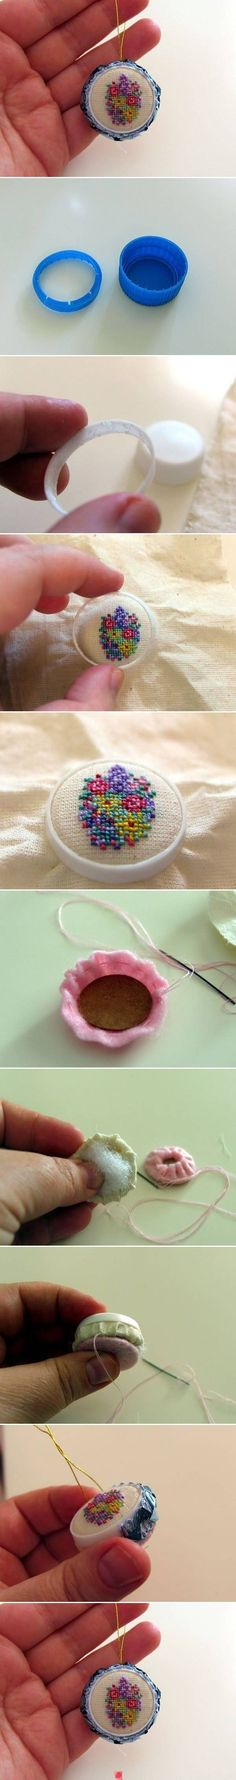 embroidery stitching using a soda pop soft drink bottle lid, cute pretty floral design, could be used as ornaments or jewelry #diy #tutorial #how to #recycle #craft #upcycle